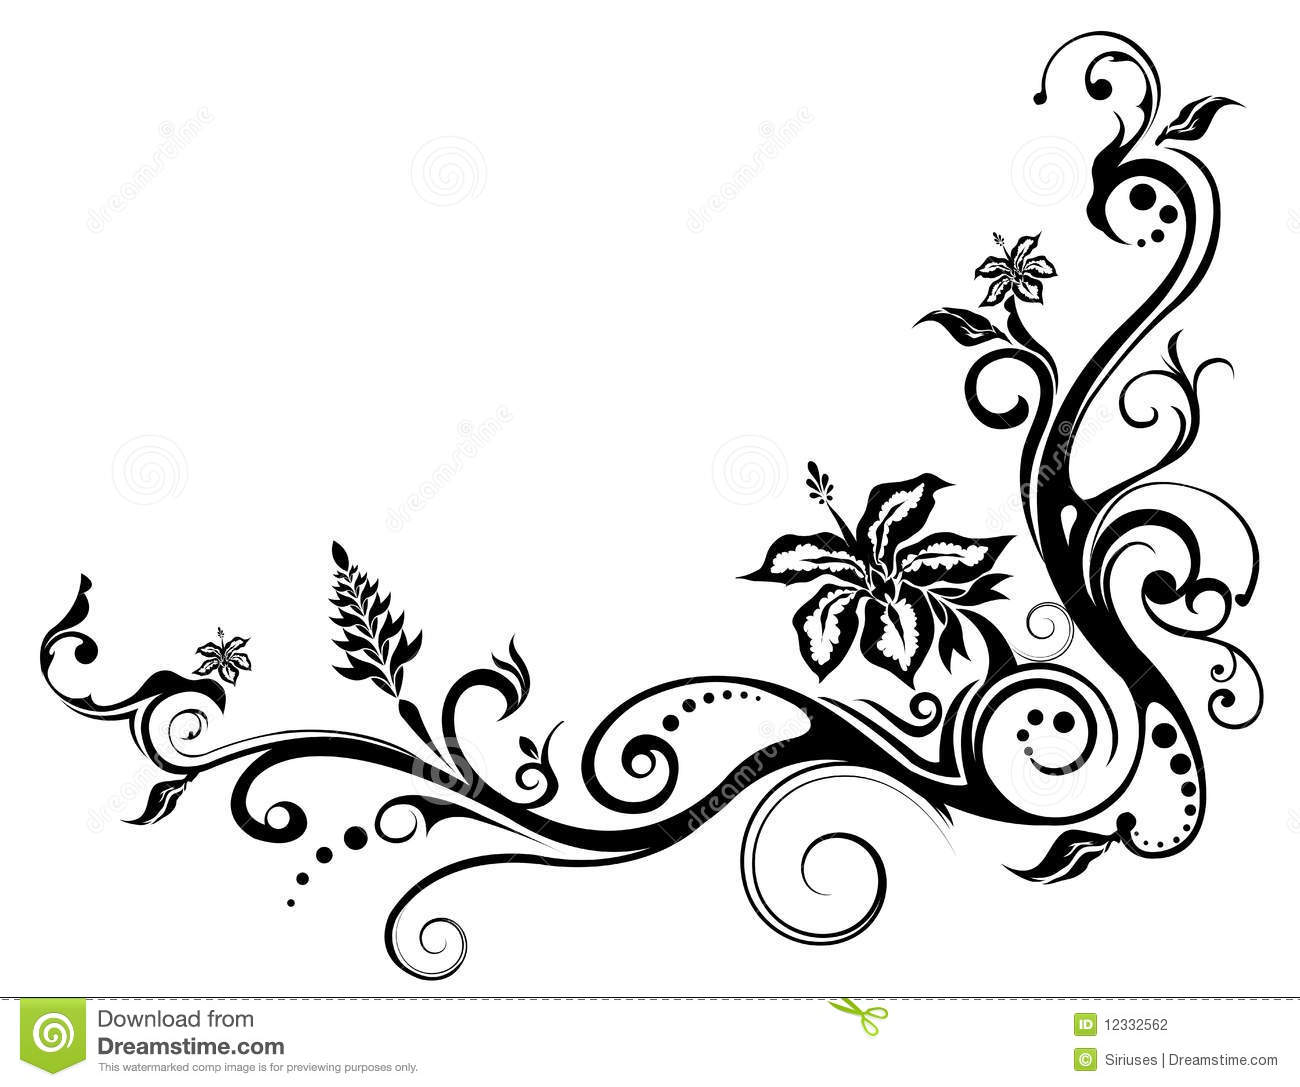 Easy Drawings Of Flowers And Vines Flower and vines pattern Stock